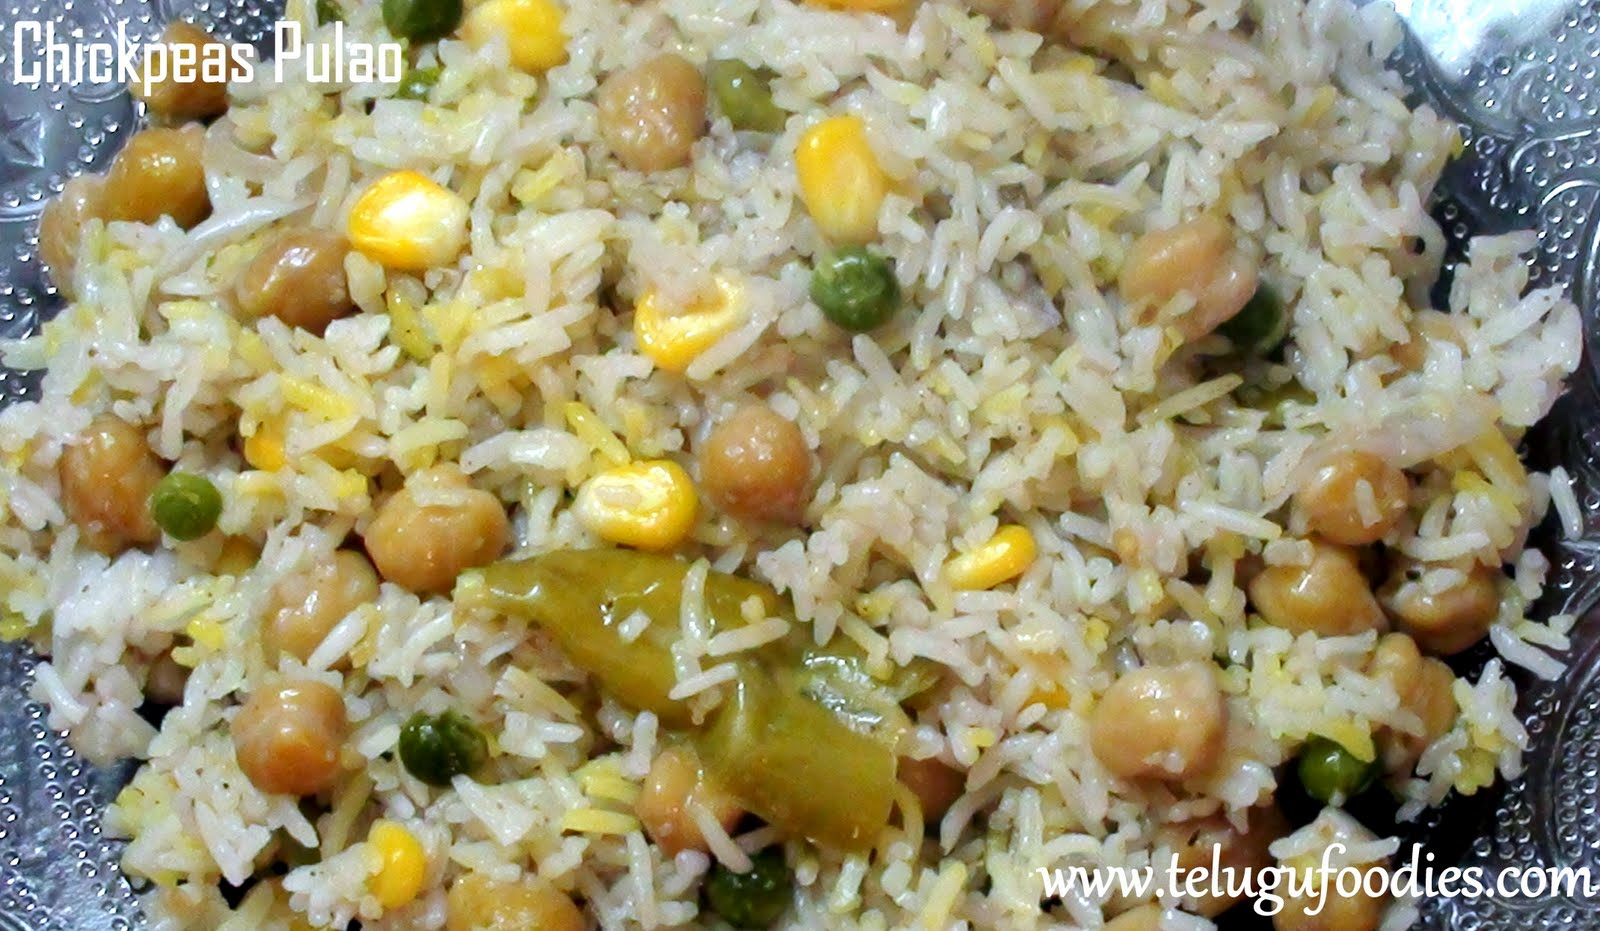 Chickpeas garbanzo beans pulao homemade telugu recipes tuesday july 12 2011 ccuart Choice Image